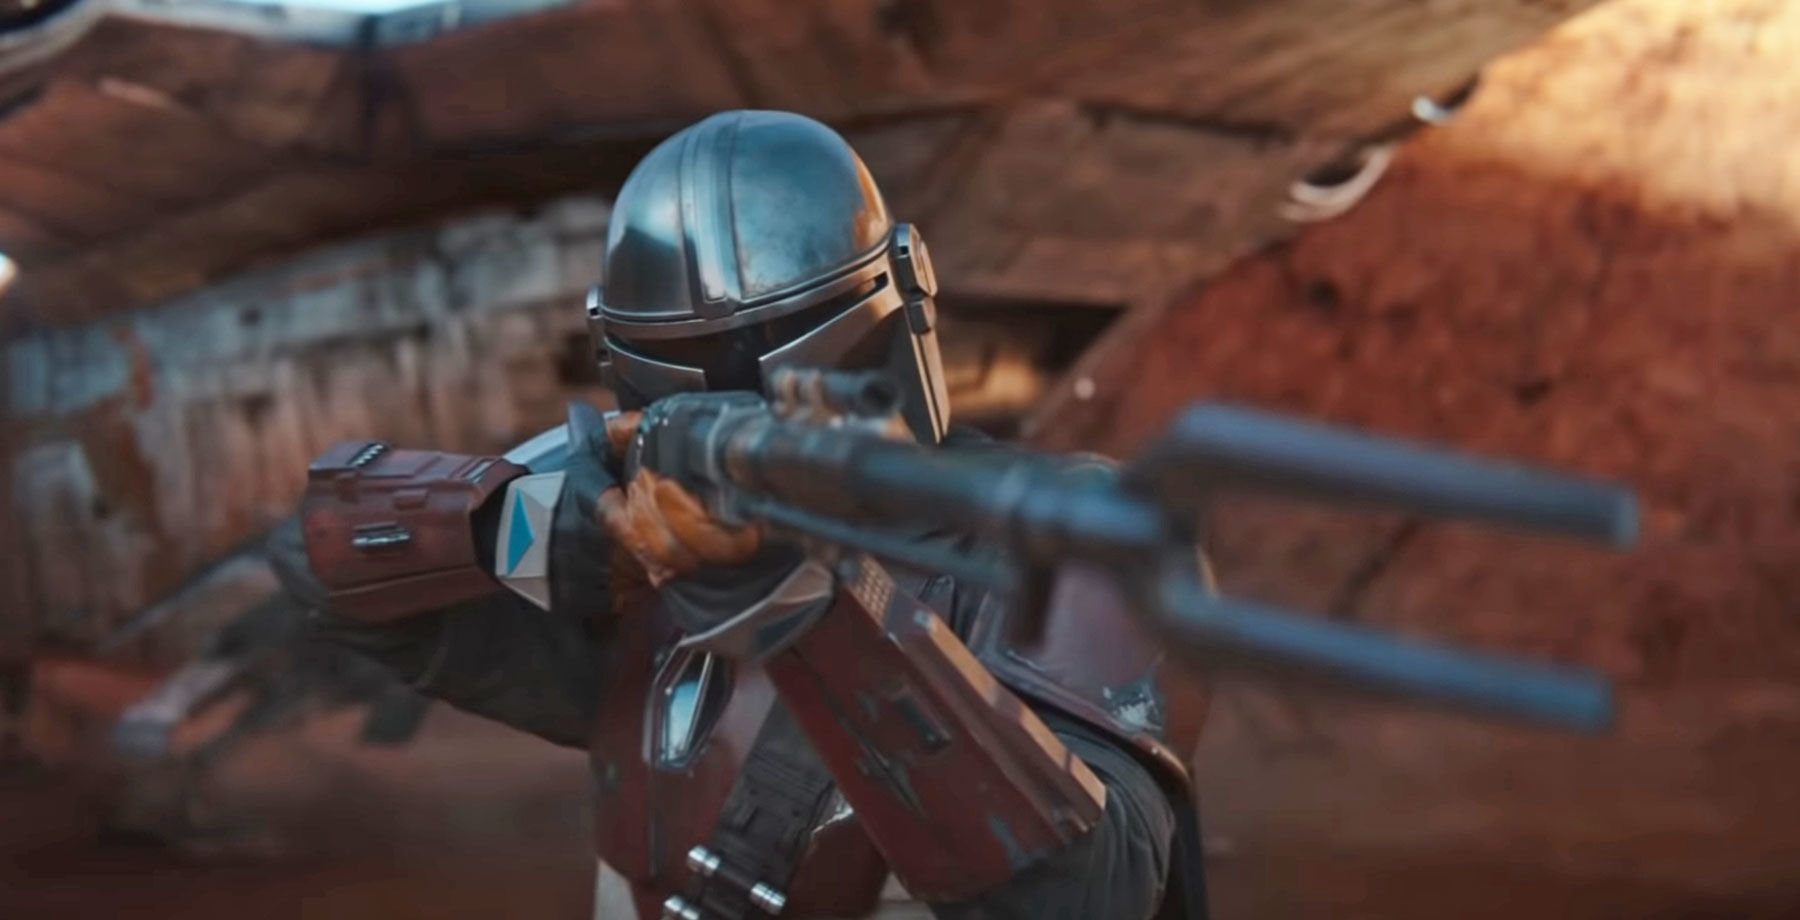 How can I watch The Mandalorian in the UK?